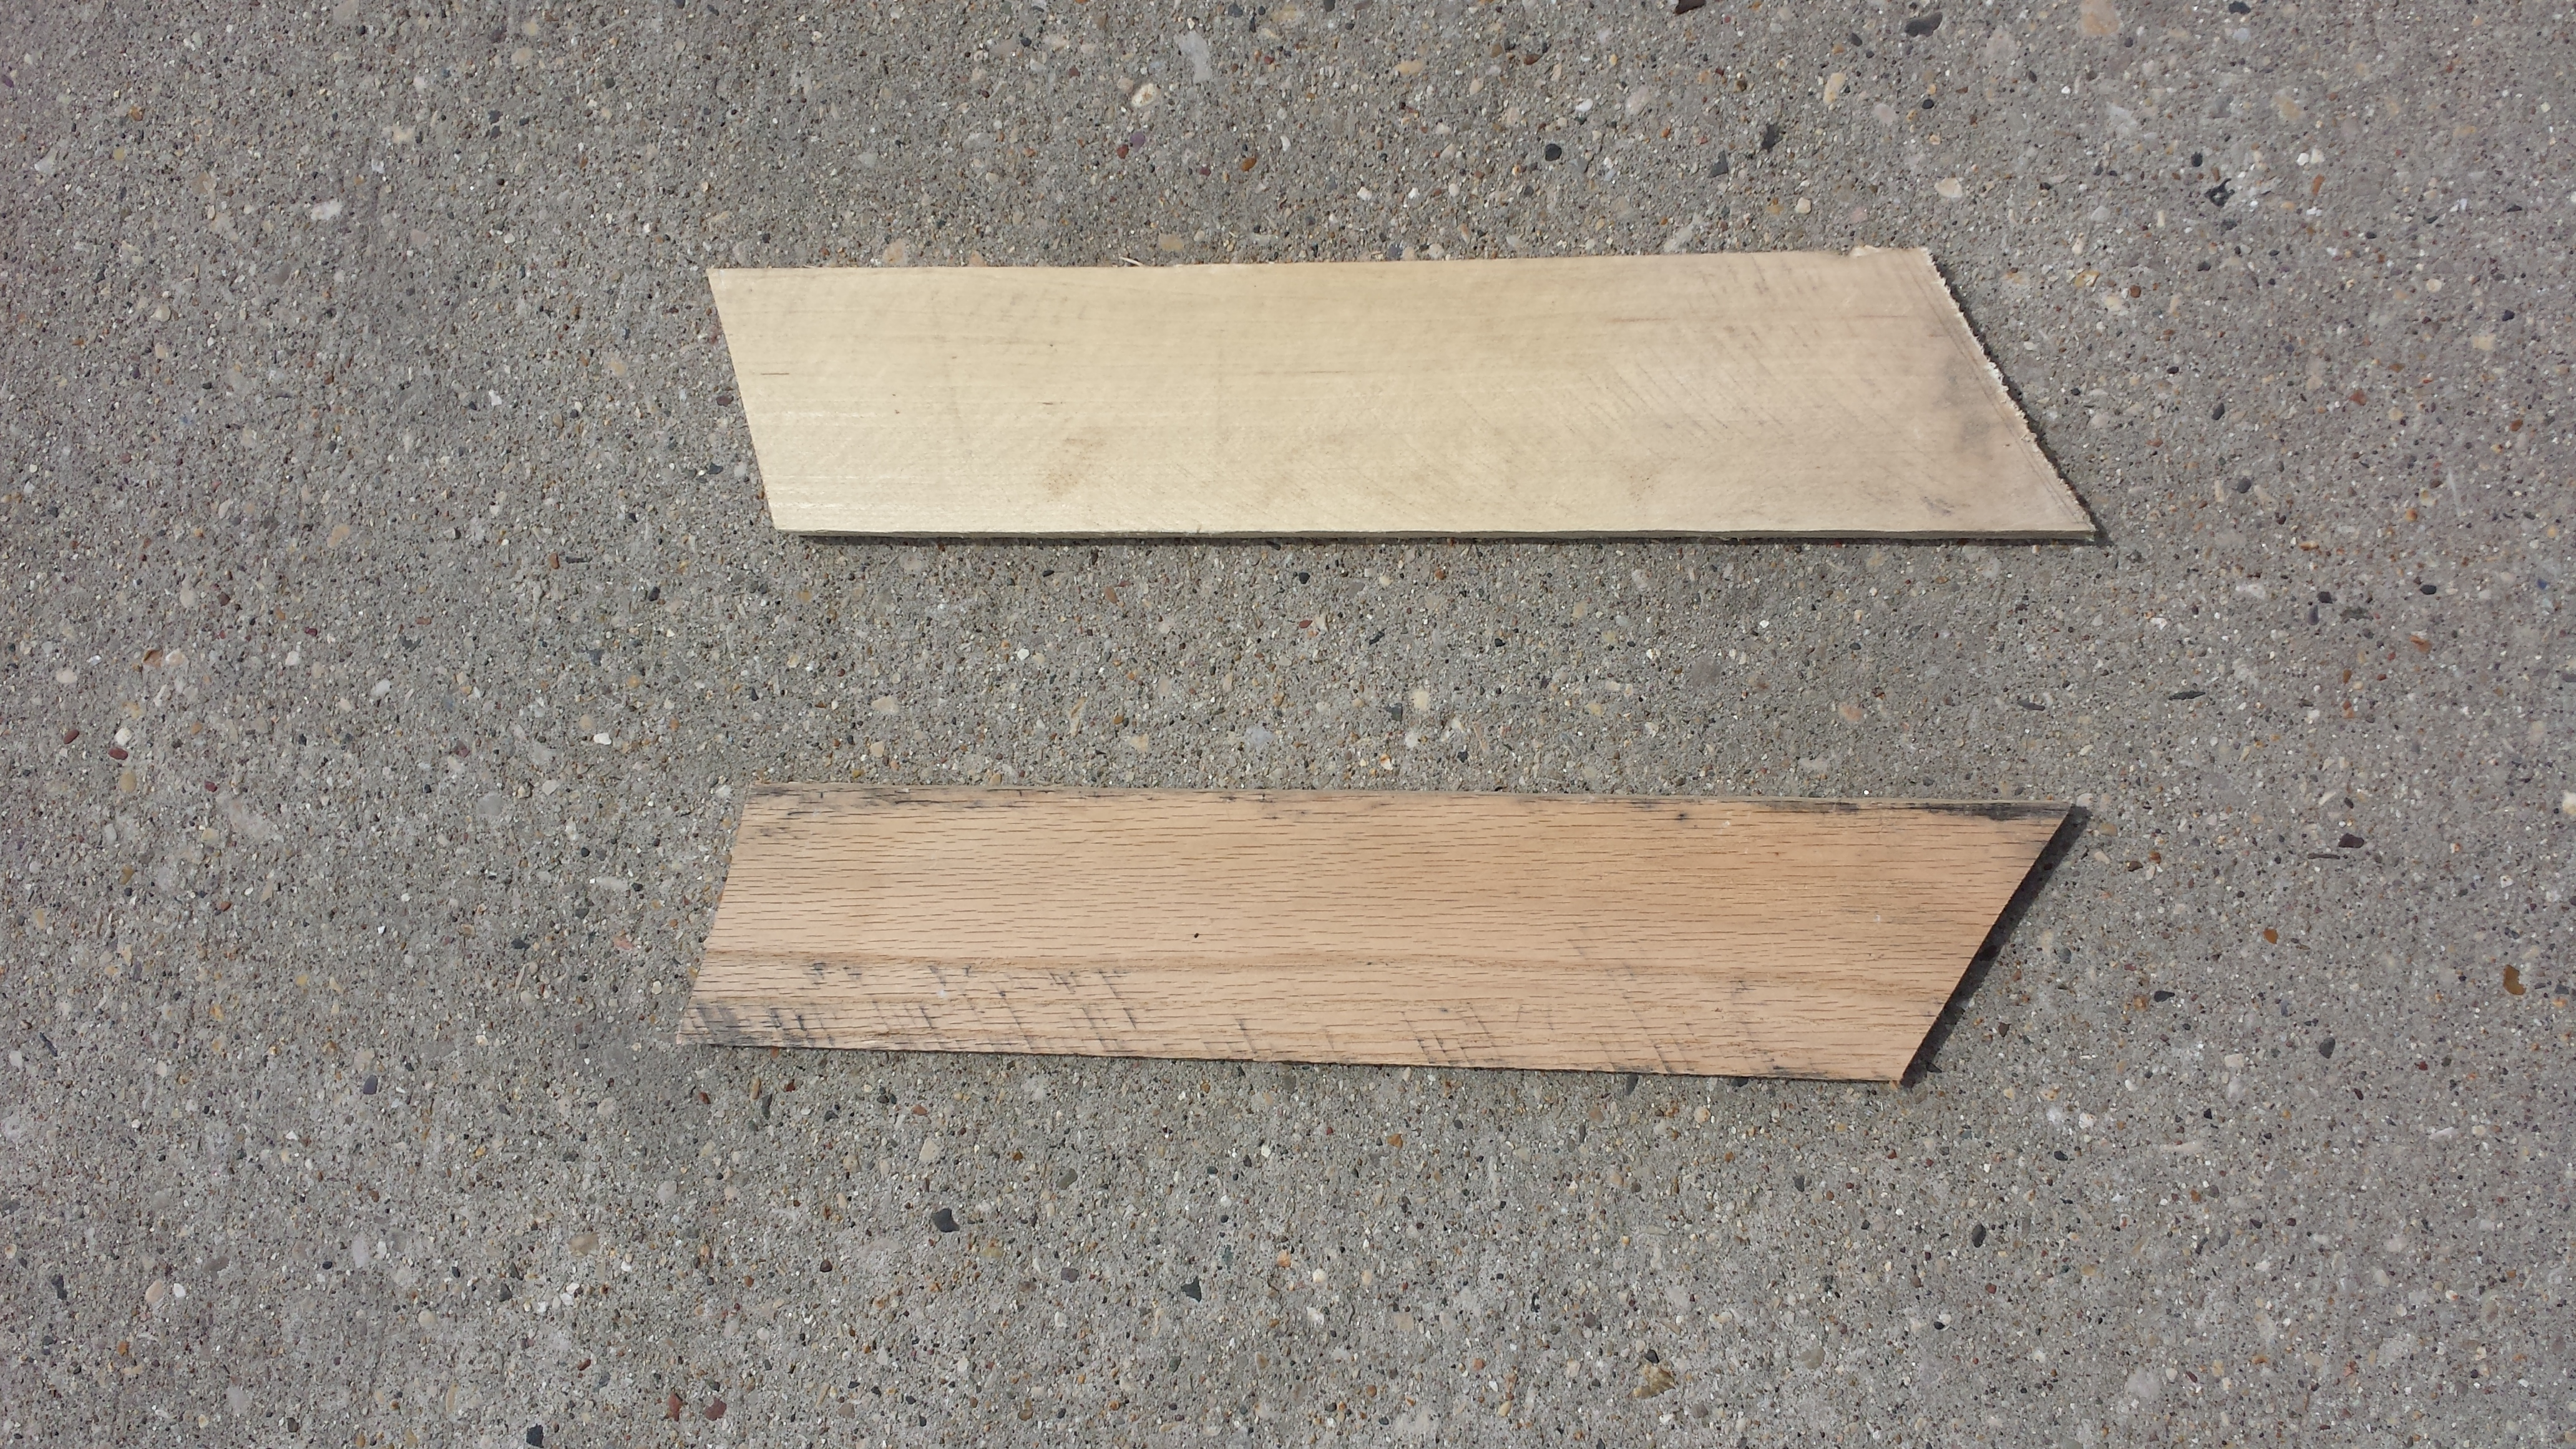 Picture of Design and Cutting the Side Pieces